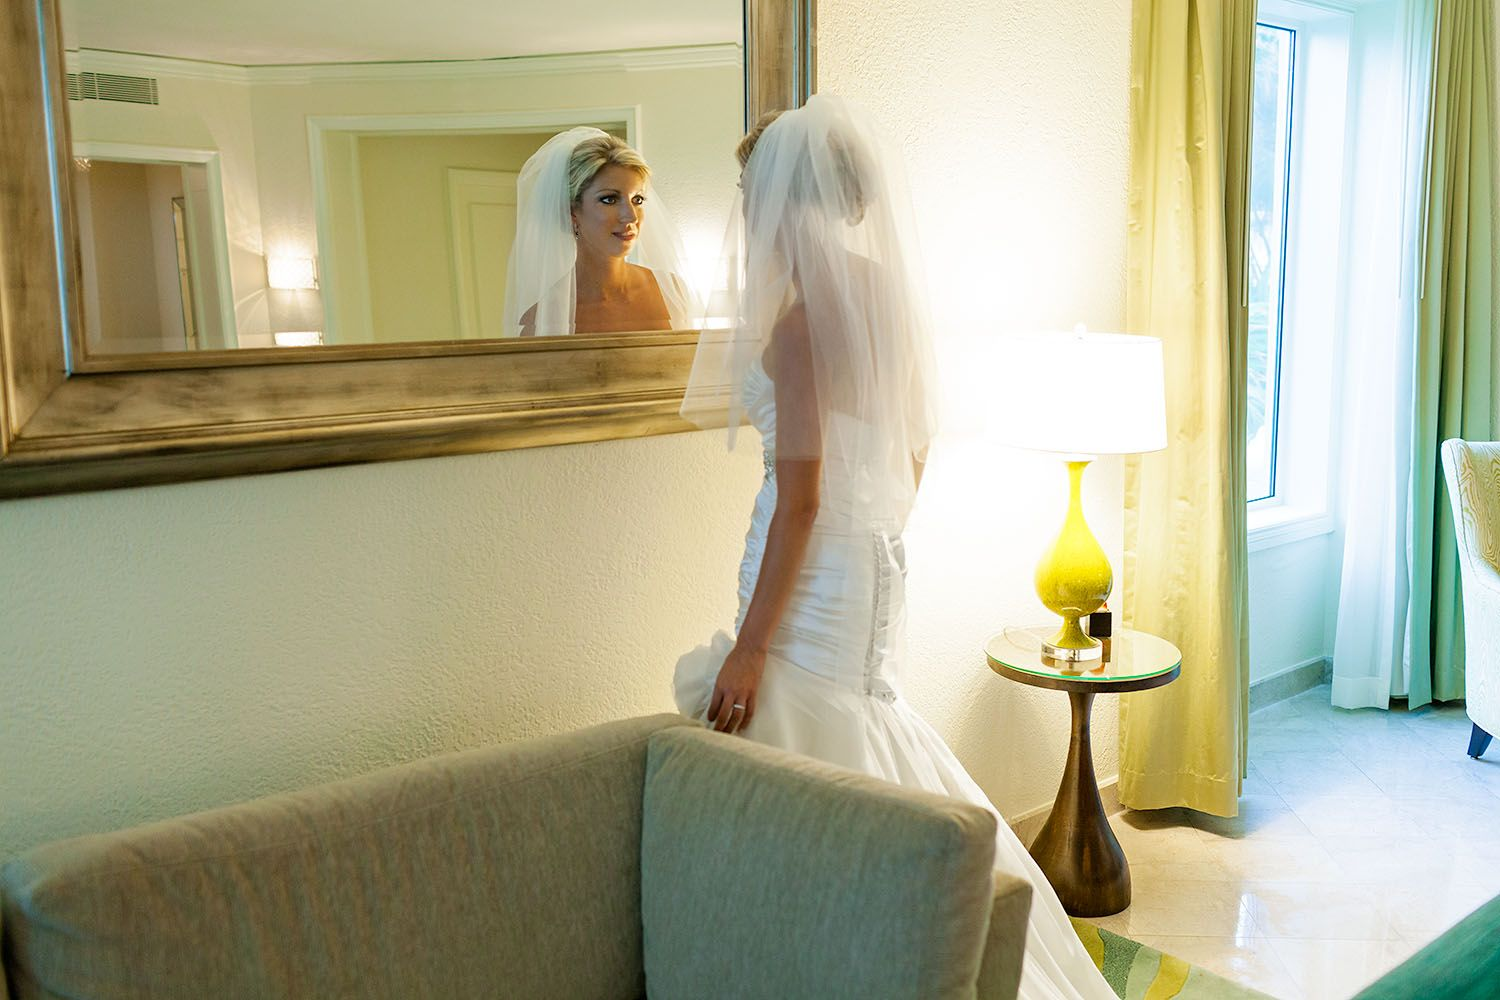 Bride mesmerized with her reflection in the mirror of the bridal suite on her wedding day at the island wedding destination Ritz-Carlton, Puerto Rico #bride #gettingready #destinationweddingphotographerpuertorico